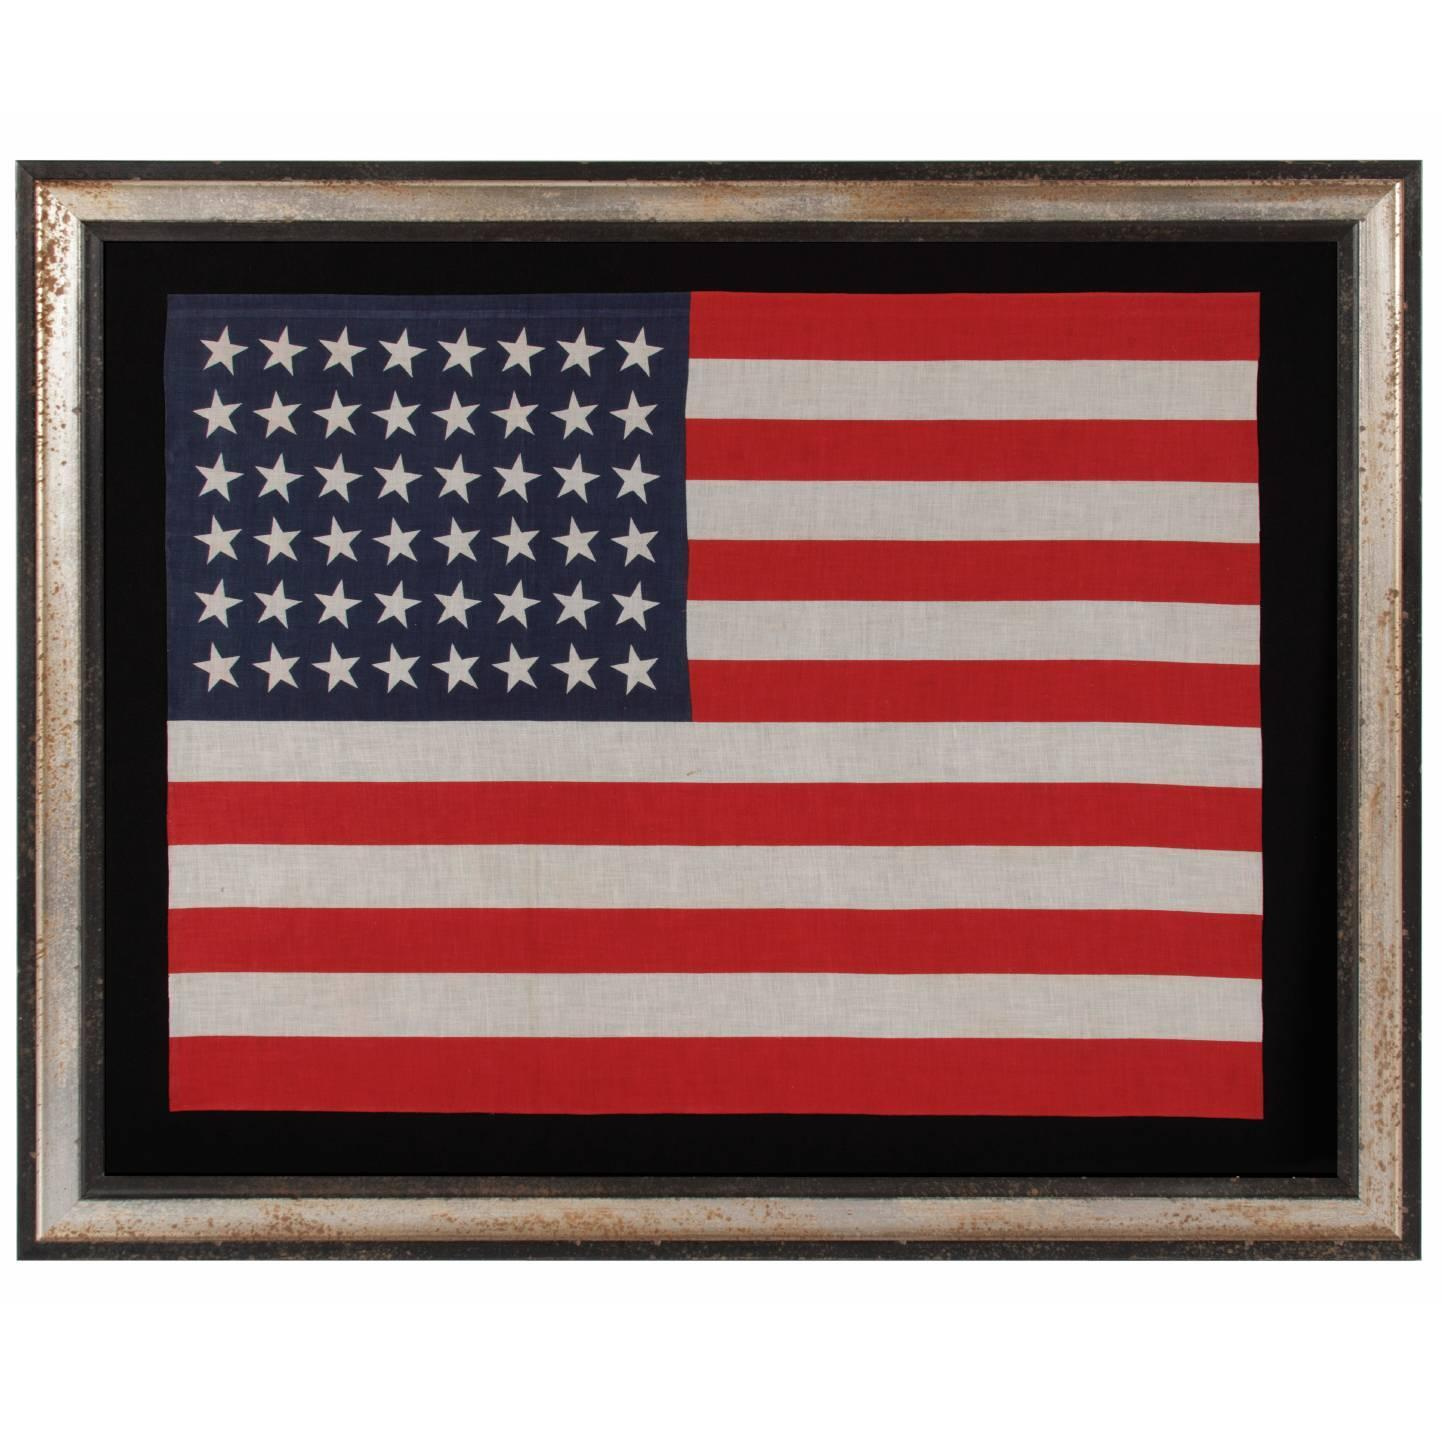 48 Star Large Scale Parade American Flag At 1stdibs